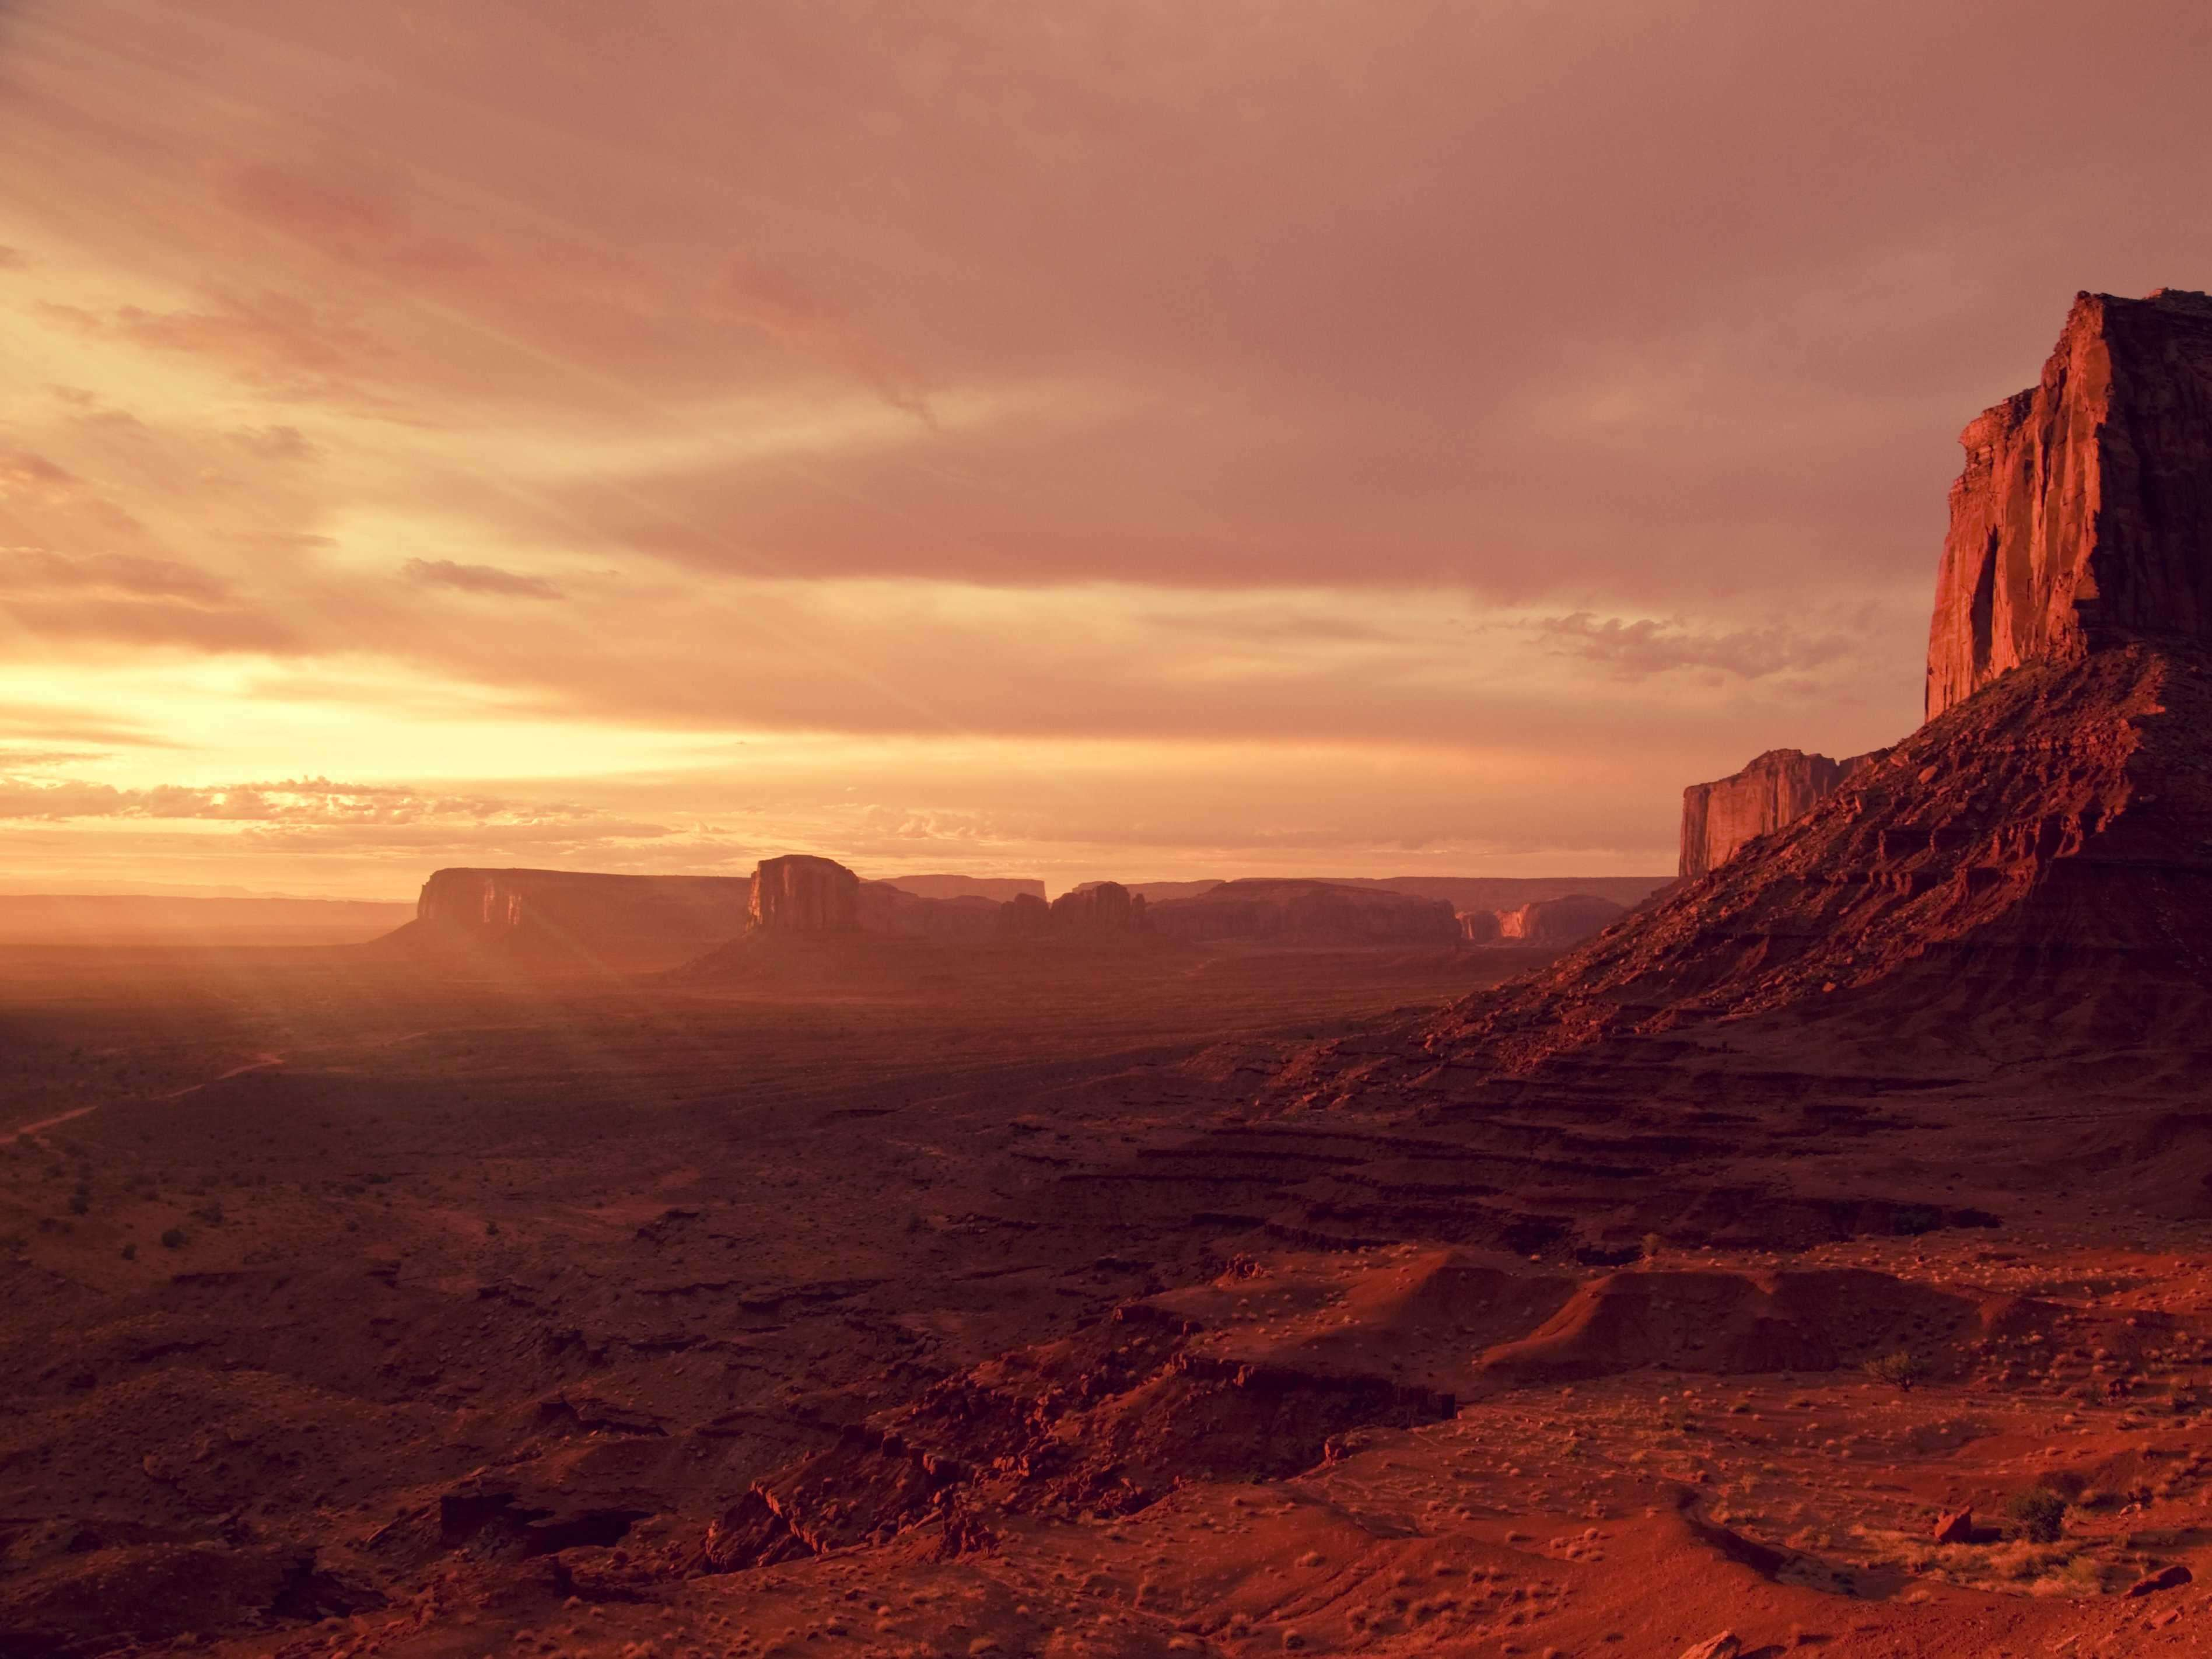 How would you solve problems if you were from Mars?